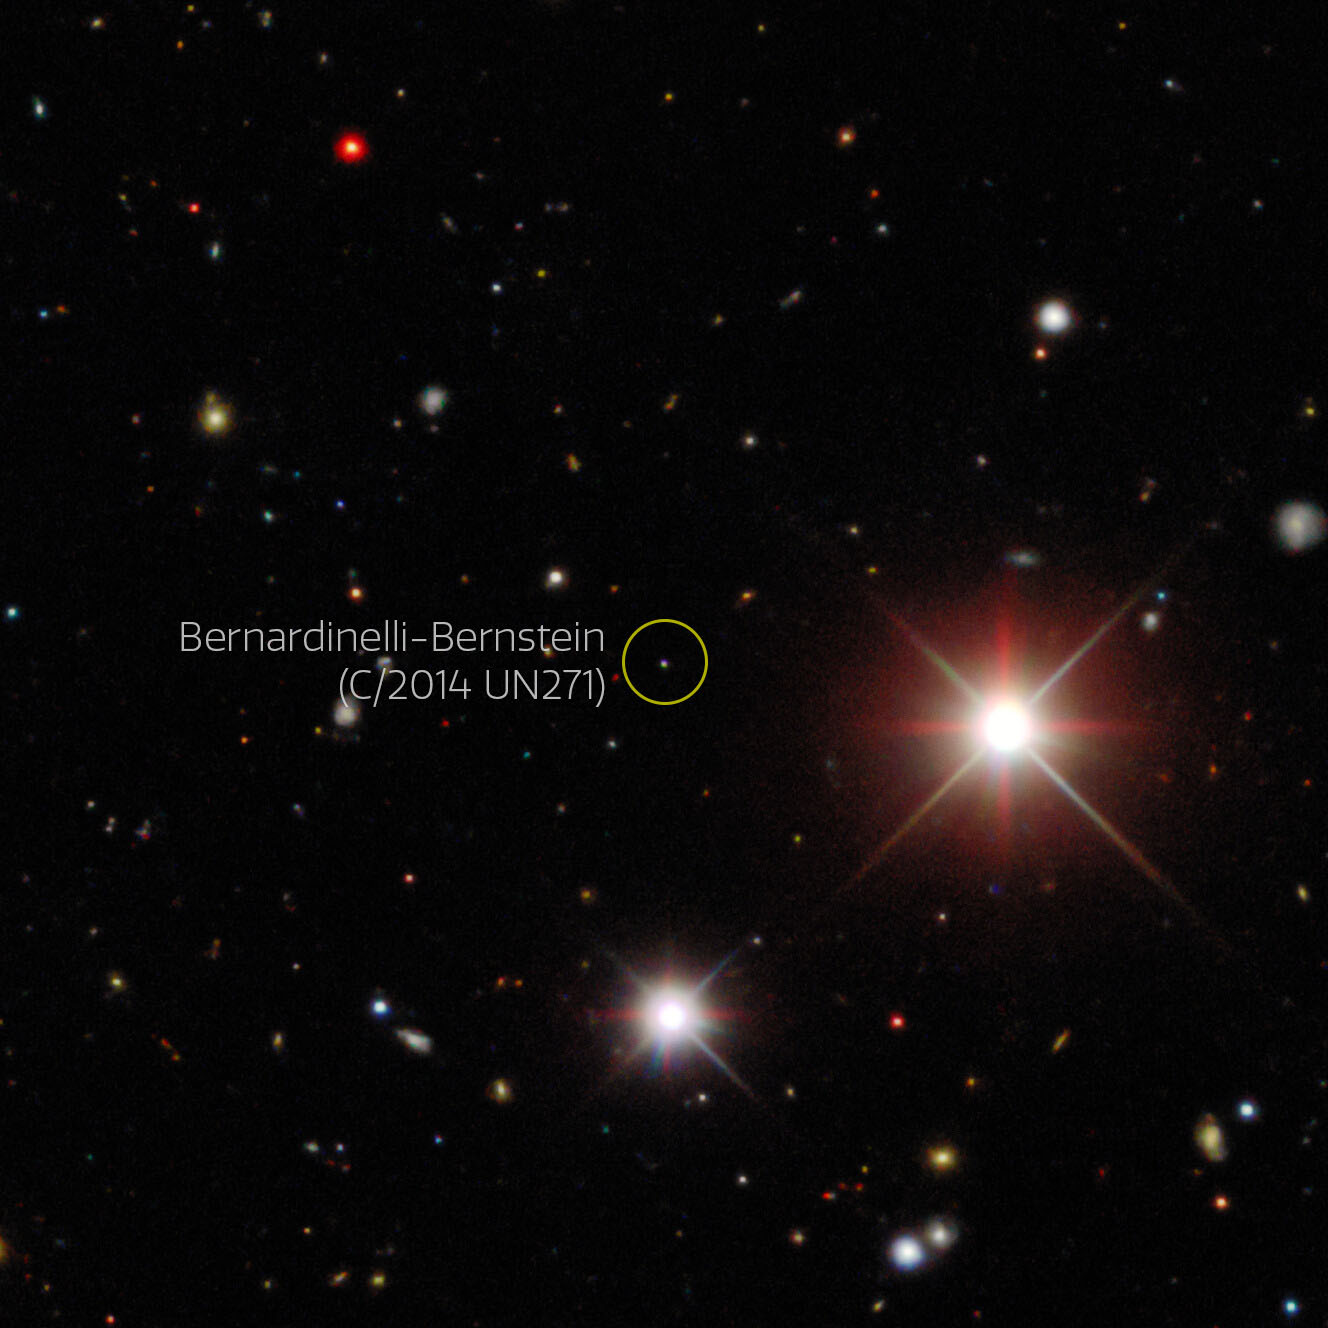 This image from the Dark Energy Survey (DES) is composed of some of the discovery exposures showing Comet Bernardinelli-Bernstein collected by the 570-megapixel Dark Energy Camera (DECam) mounted on the Víctor M. Blanco 4-meter Telescope at Cerro Tololo Inter-American Observatory (CTIO) in Chile. These images show the comet in October 2017, when it was 25 au away, 83% of the distance to Neptune.